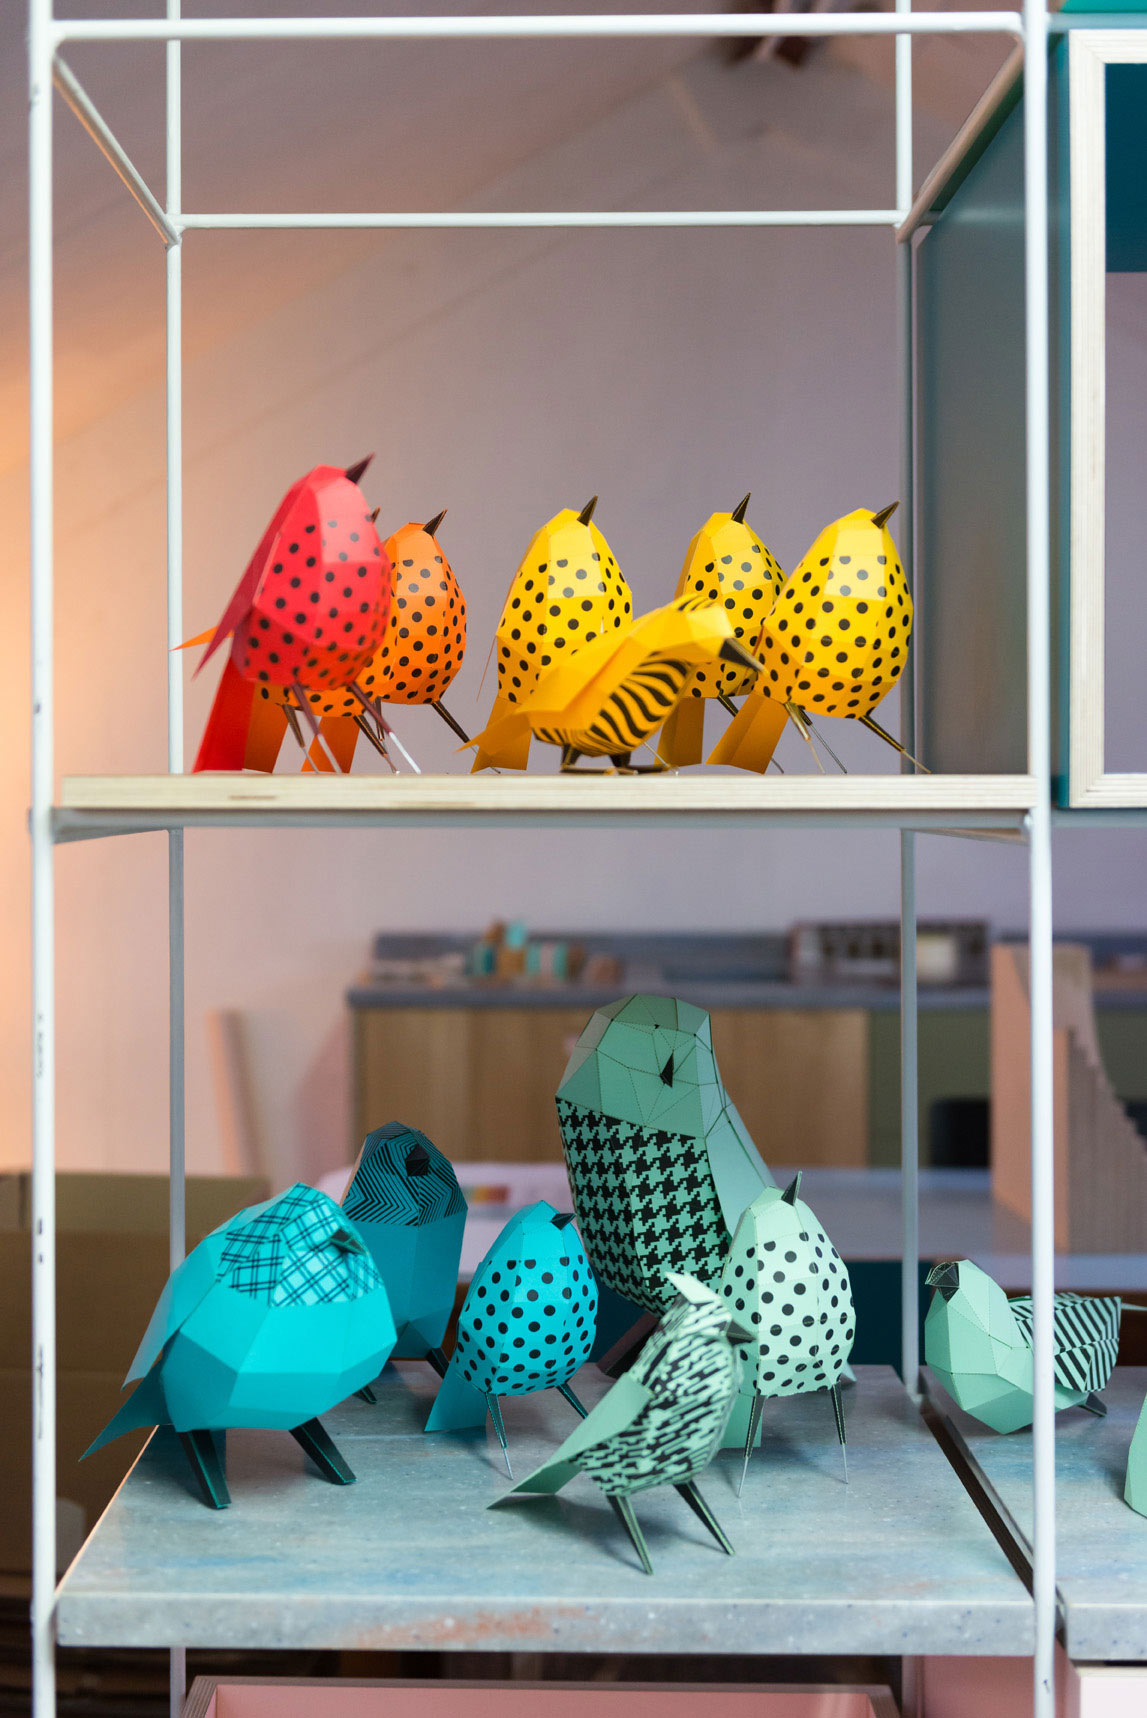 Paper Aviary - A London Exhibition Inspired by the Fashion Houses and Craftsmen of the Area